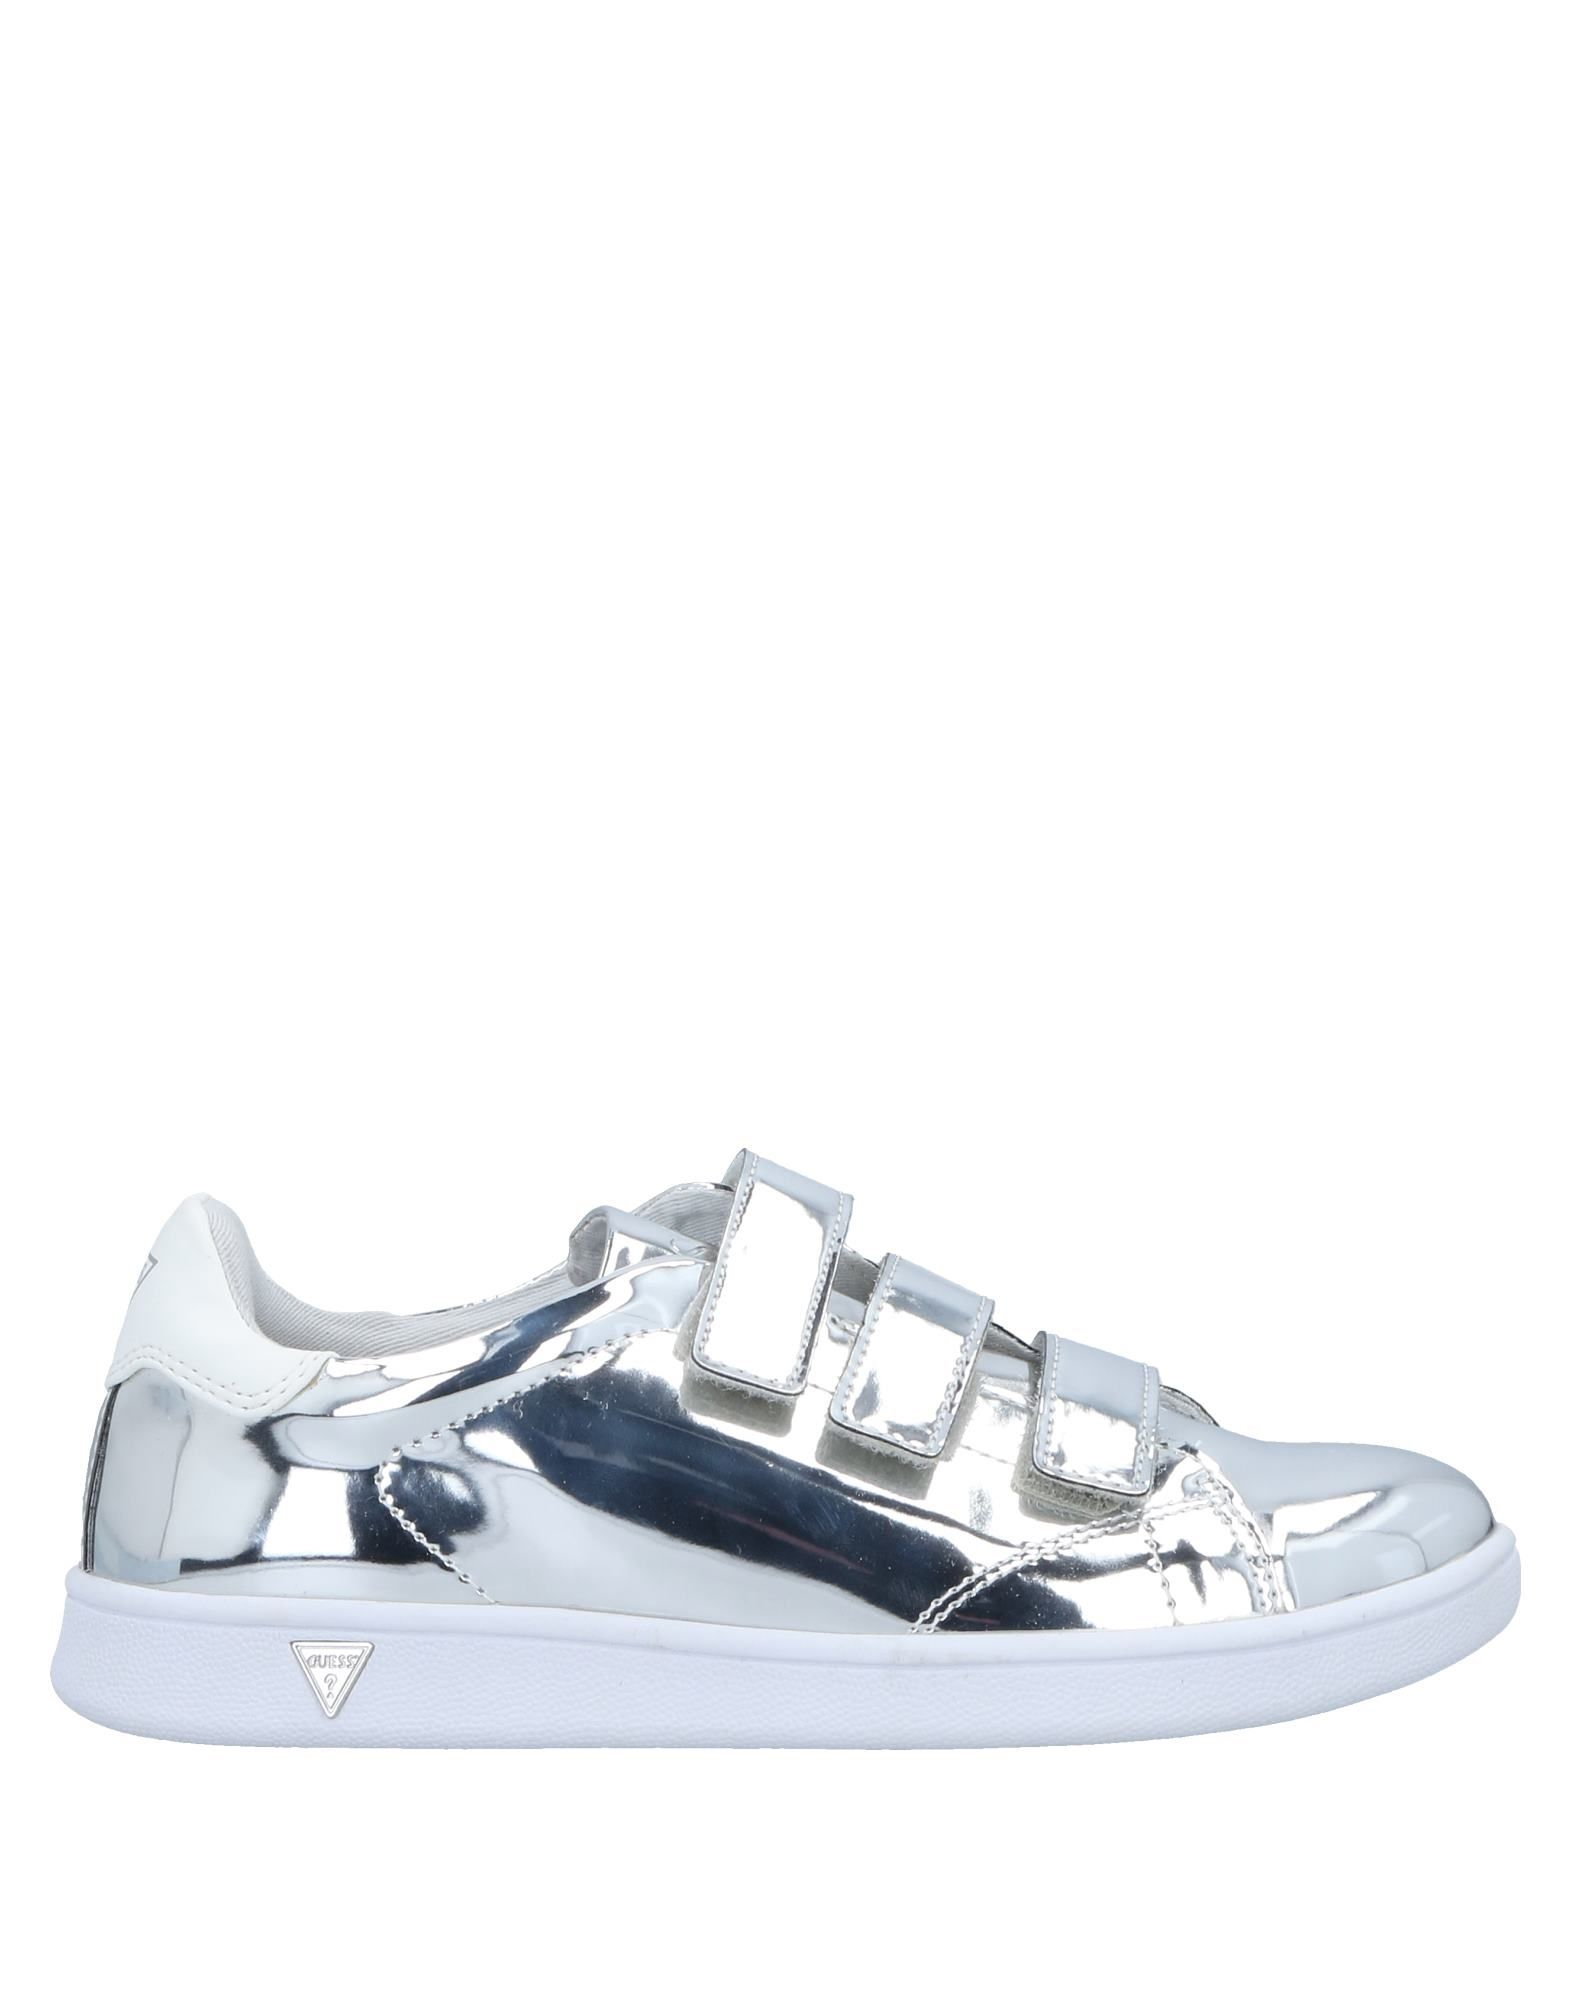 Moda Sneakers Guess Donna - 11520996GO